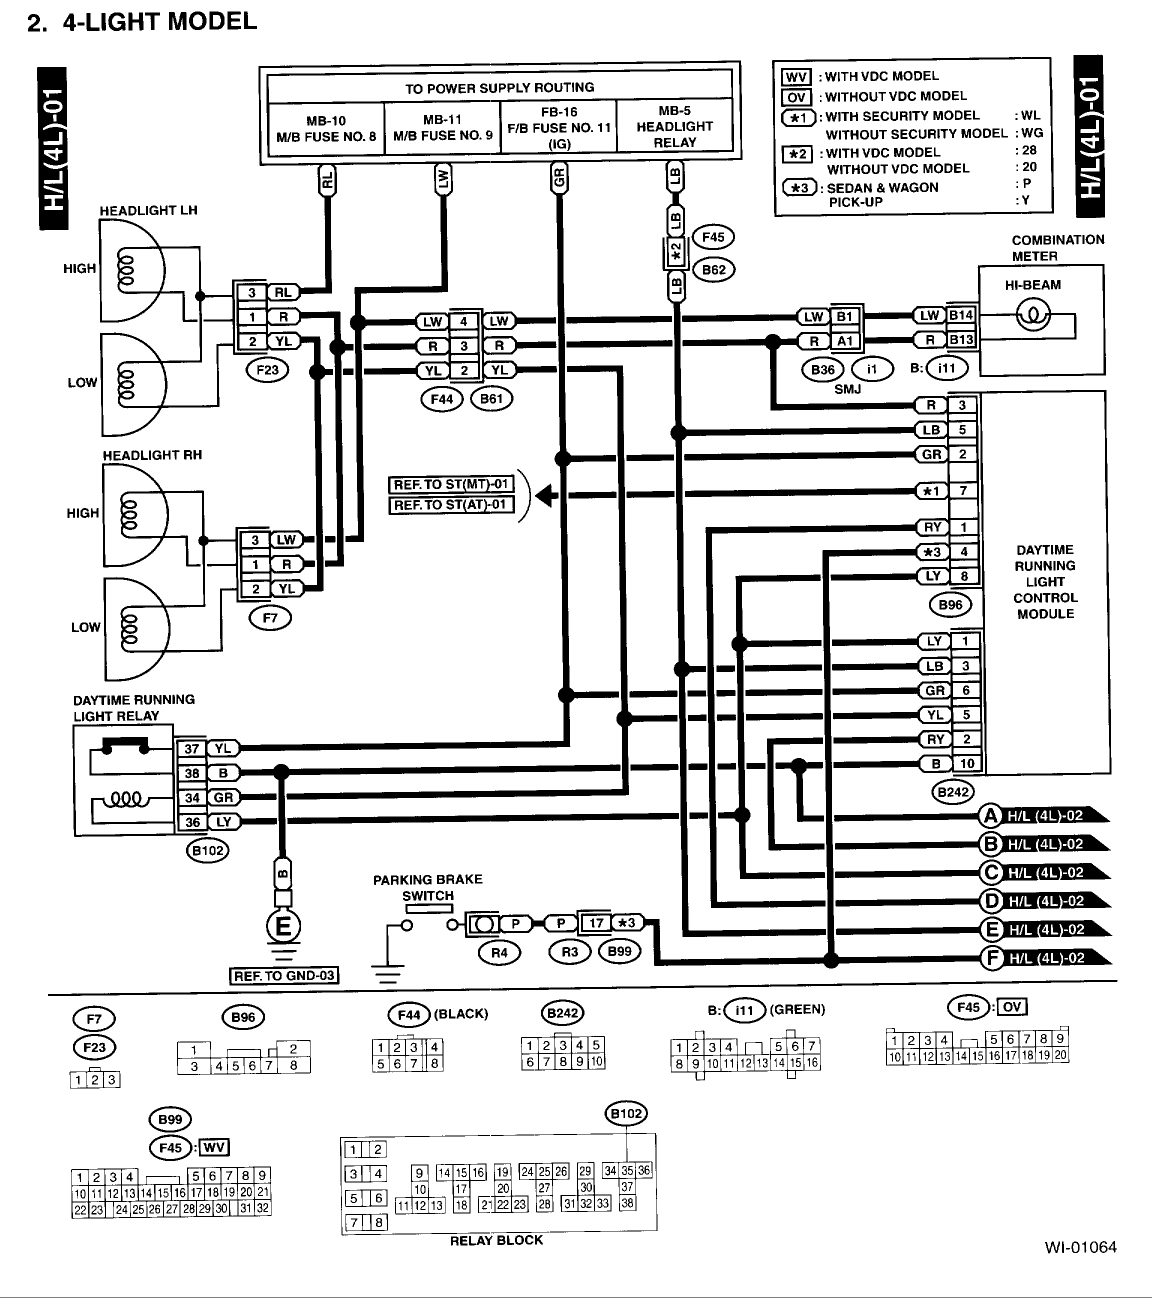 [SCHEMATICS_48EU]  Subaru Wrx Sti Wiring Diagram -Motorola Cable Box Wiring Diagram | Begeboy Wiring  Diagram Source | Wiring Diagram Subaru Impreza 2000 |  | Begeboy Wiring Diagram Source